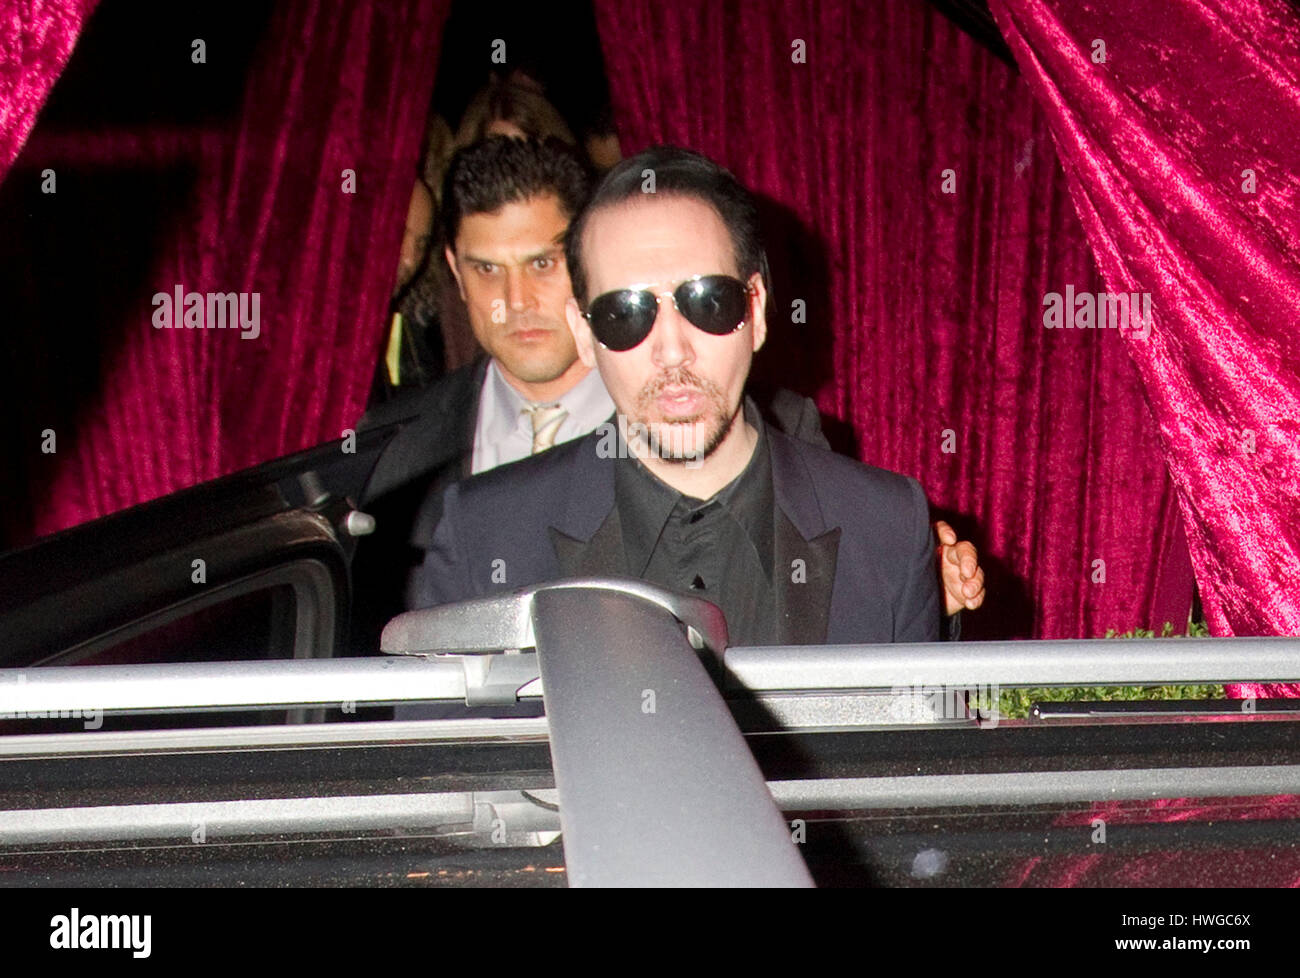 Marilyn Manson attends an engagement  party for Johnny Depp and Amber Heard on March 15, 2014 in Los Angeles, California. - Stock Image